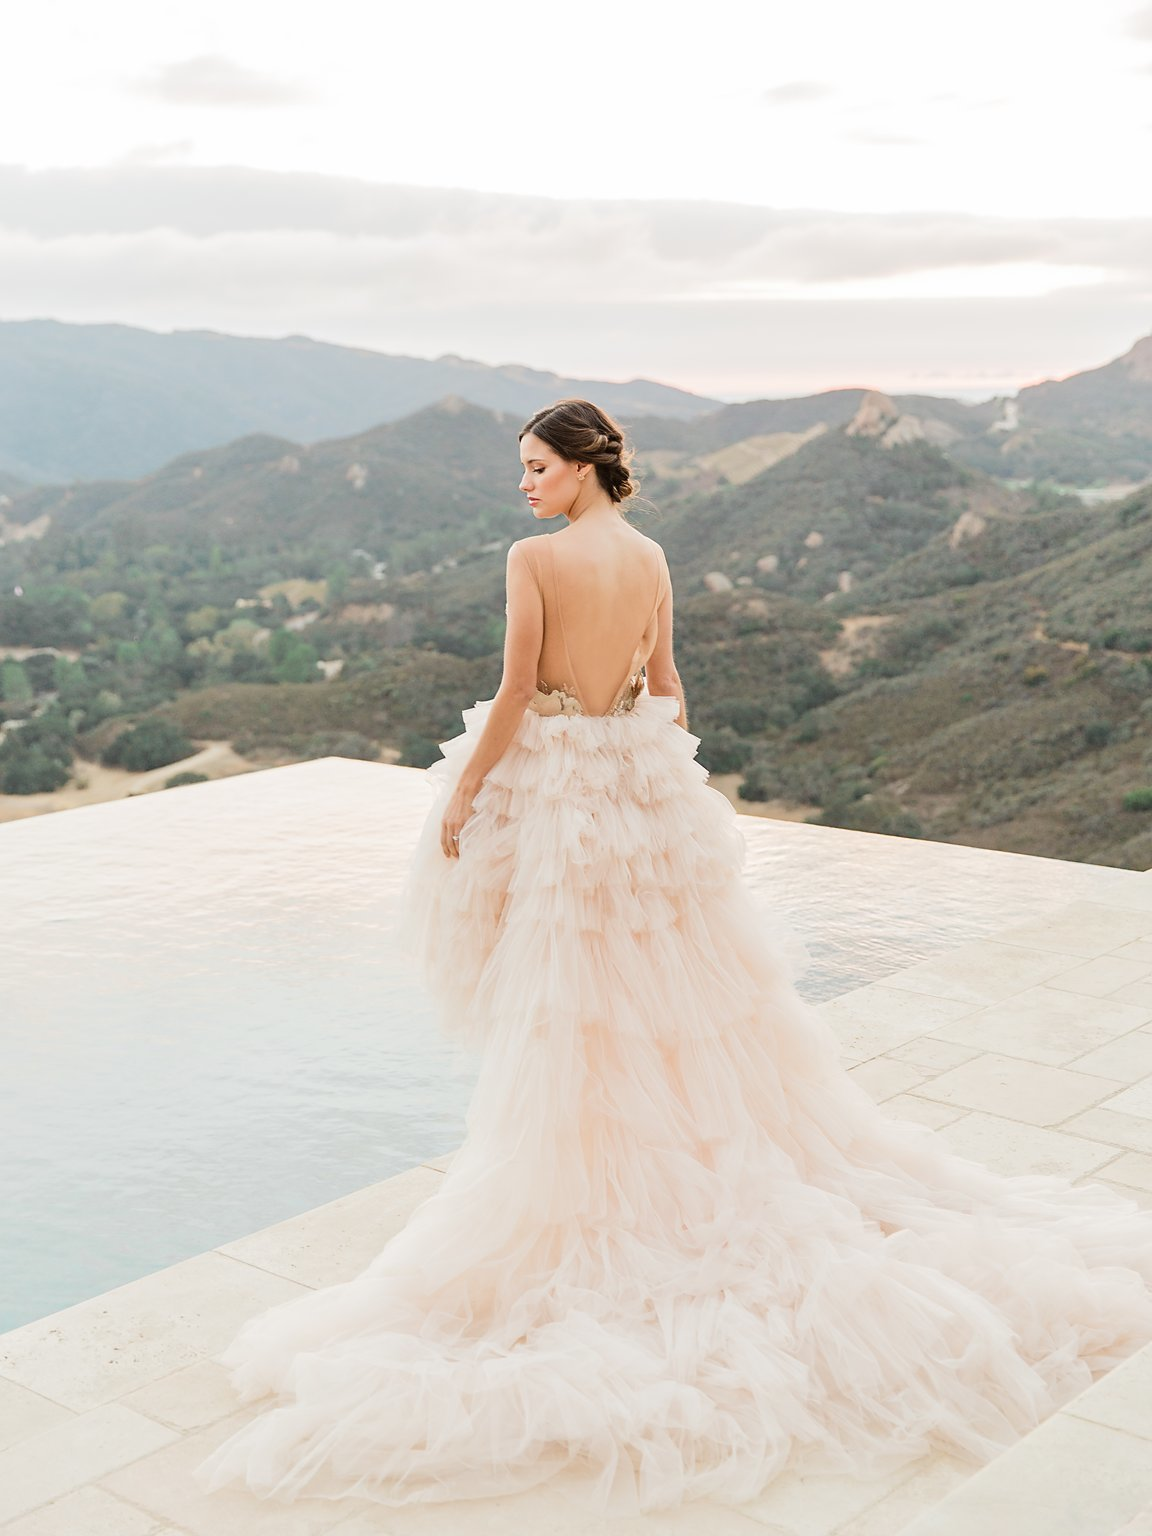 Babsie-Ly-Photography-Malibu-Rocky-Oaks-Wedding-Fine-Art-Destination-Photographer-Musat-Bridal-Dress-034